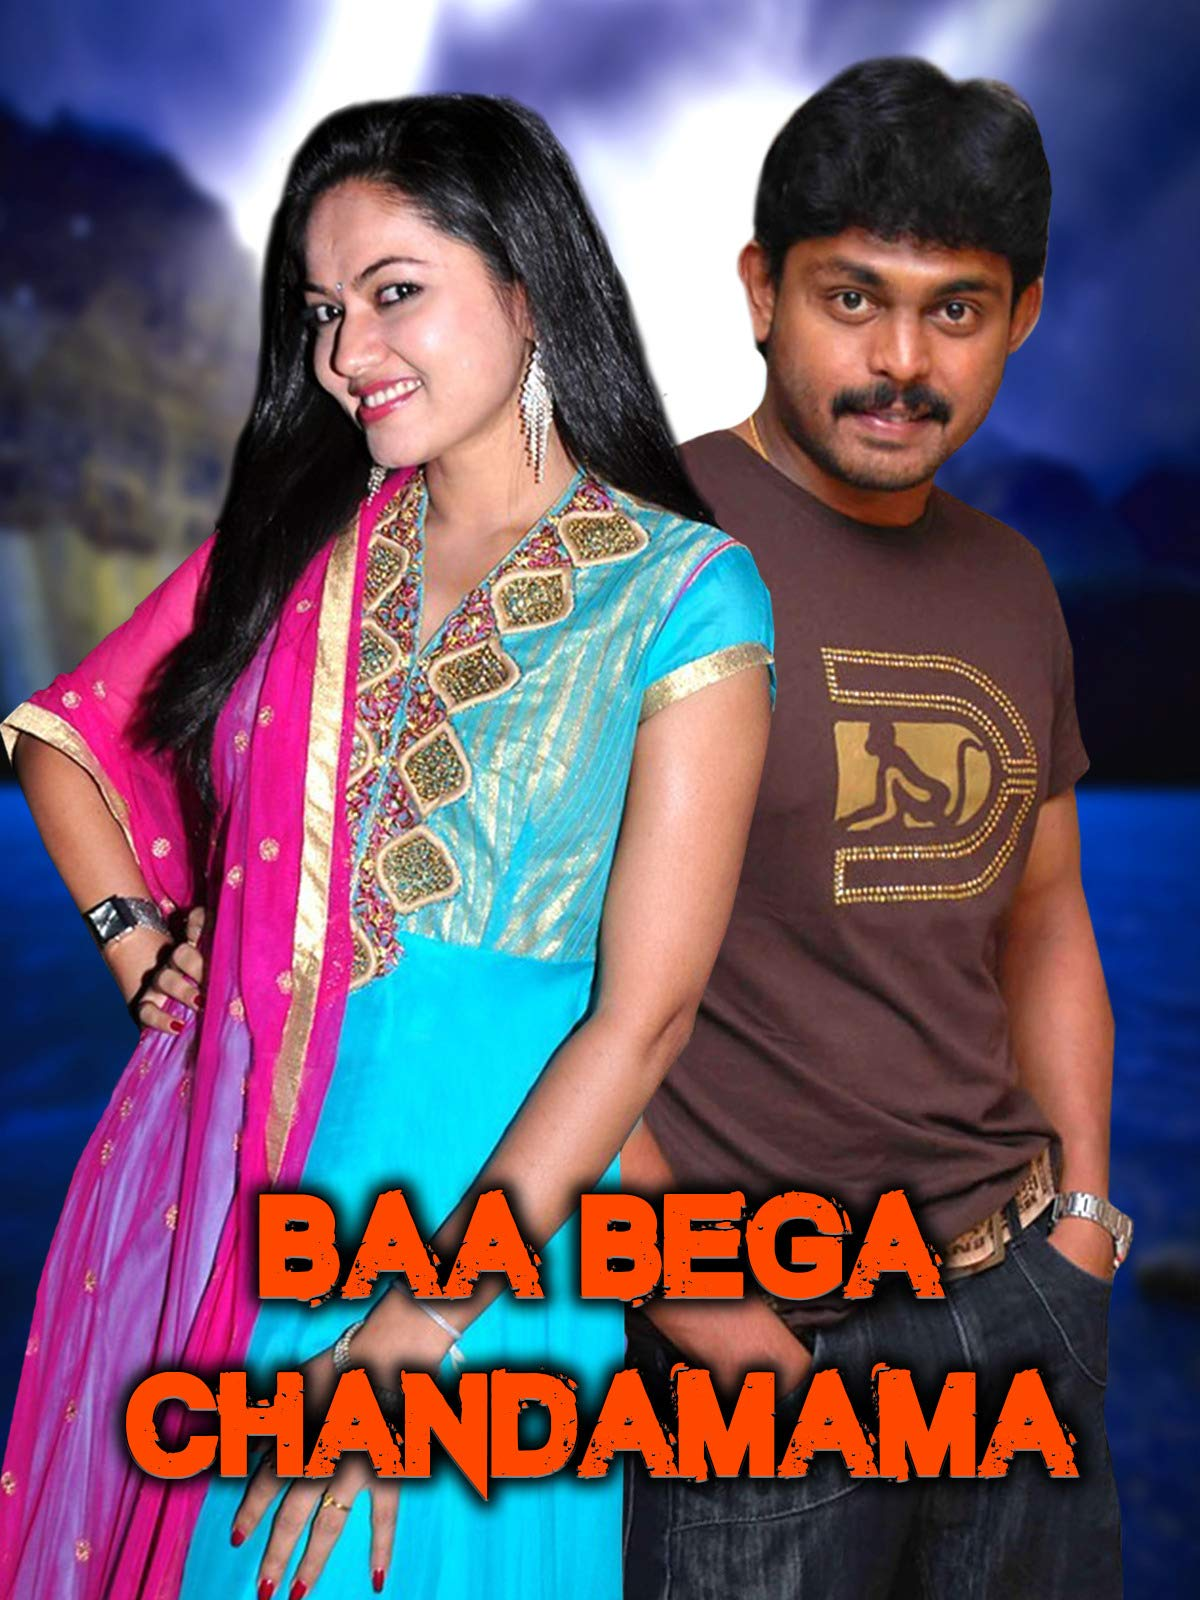 Baa Bega Chandamama